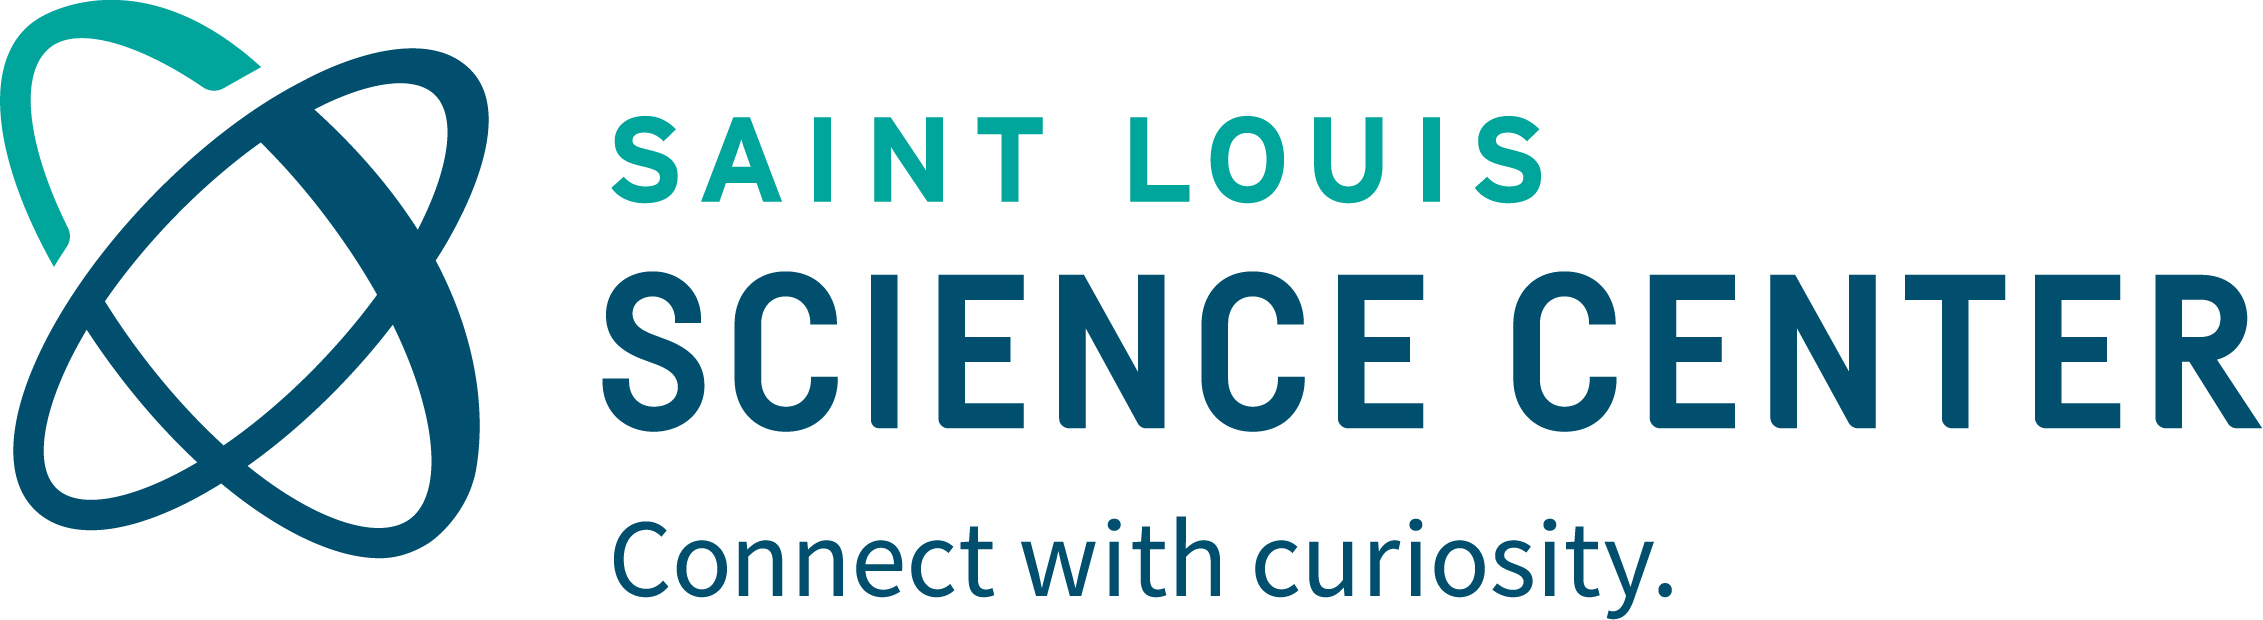 Saint Louis Science Center logo